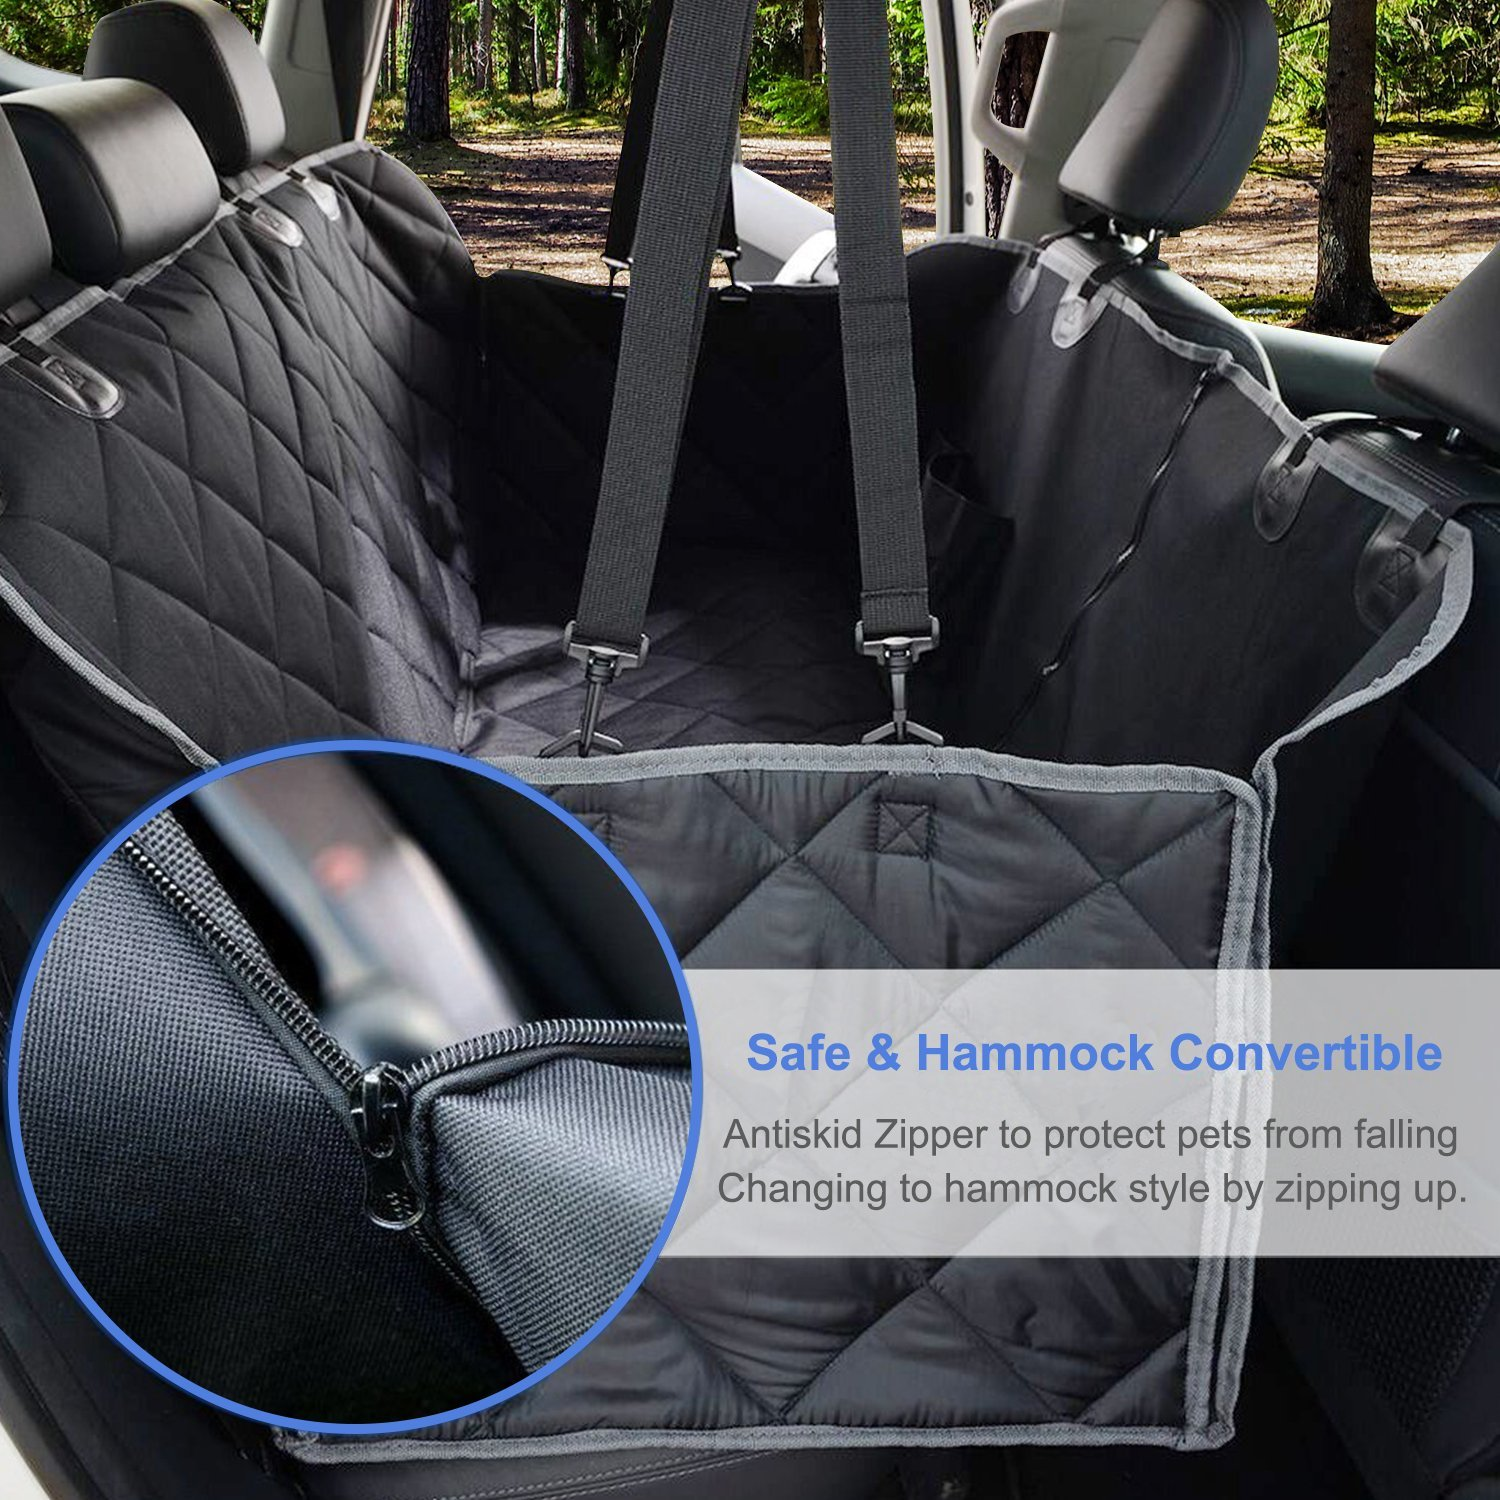 GELOO Bench Car Seat Cover Protector Waterproof, Heavy-Duty and Nonslip Pet Car Seat Cover for Dogs with Universal Size Fits for Cars, Trucks & SUVs by GELOO (Image #4)